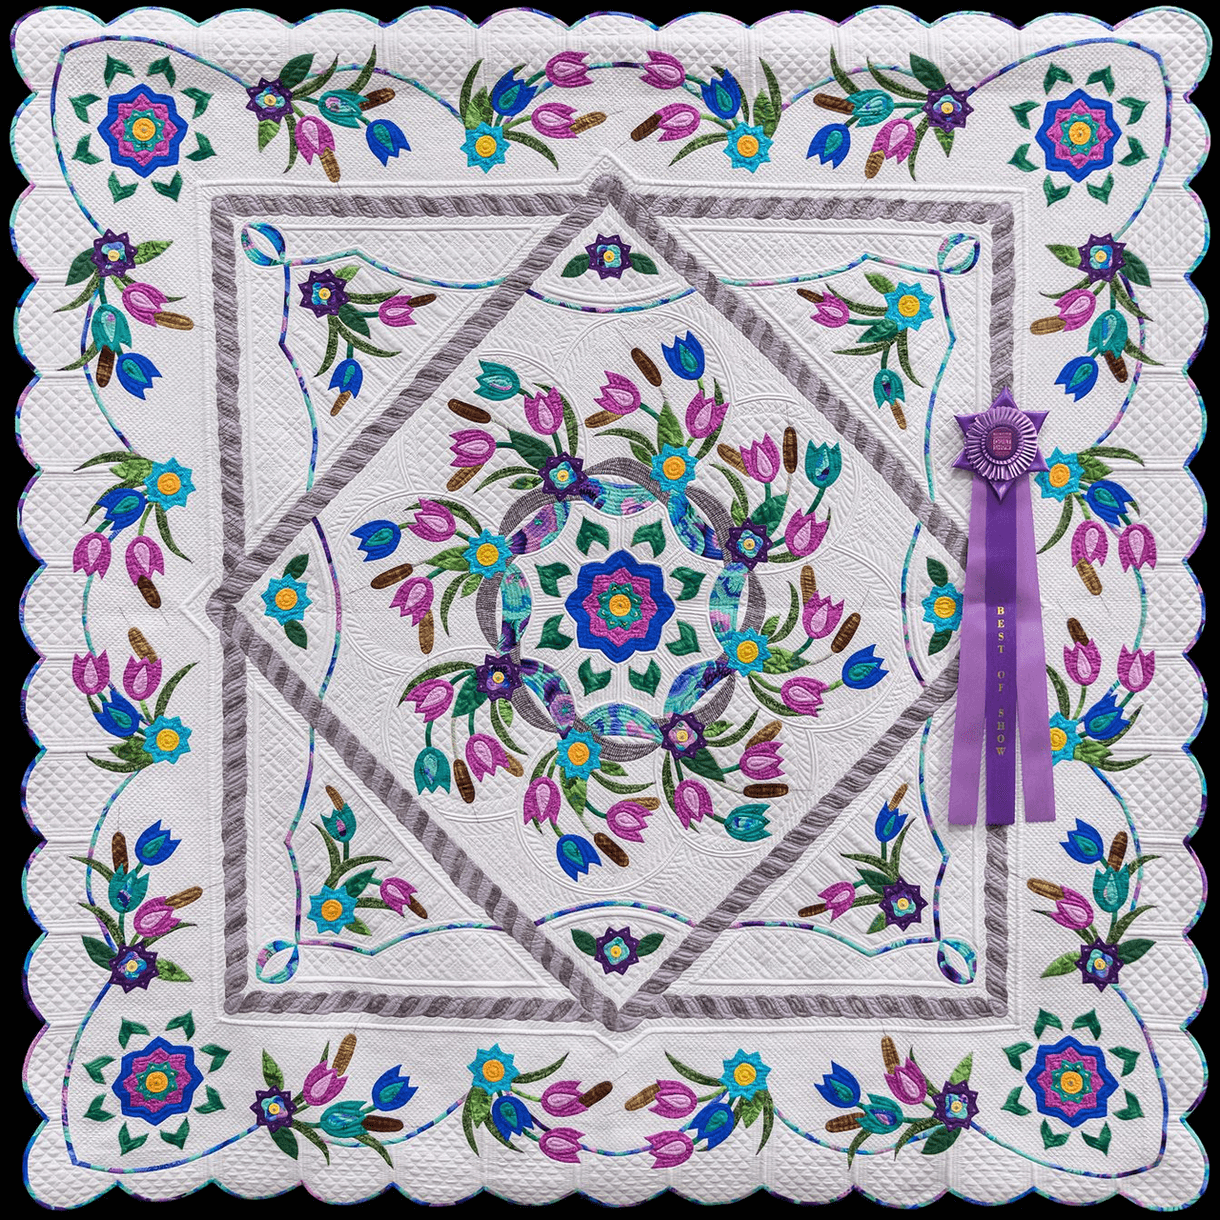 The Great Wisconsin Quilt Show 2020 Best of Show Award! Spring Breeze by Barbara Clem of Rockford IL. Quilted by Barbara Clem